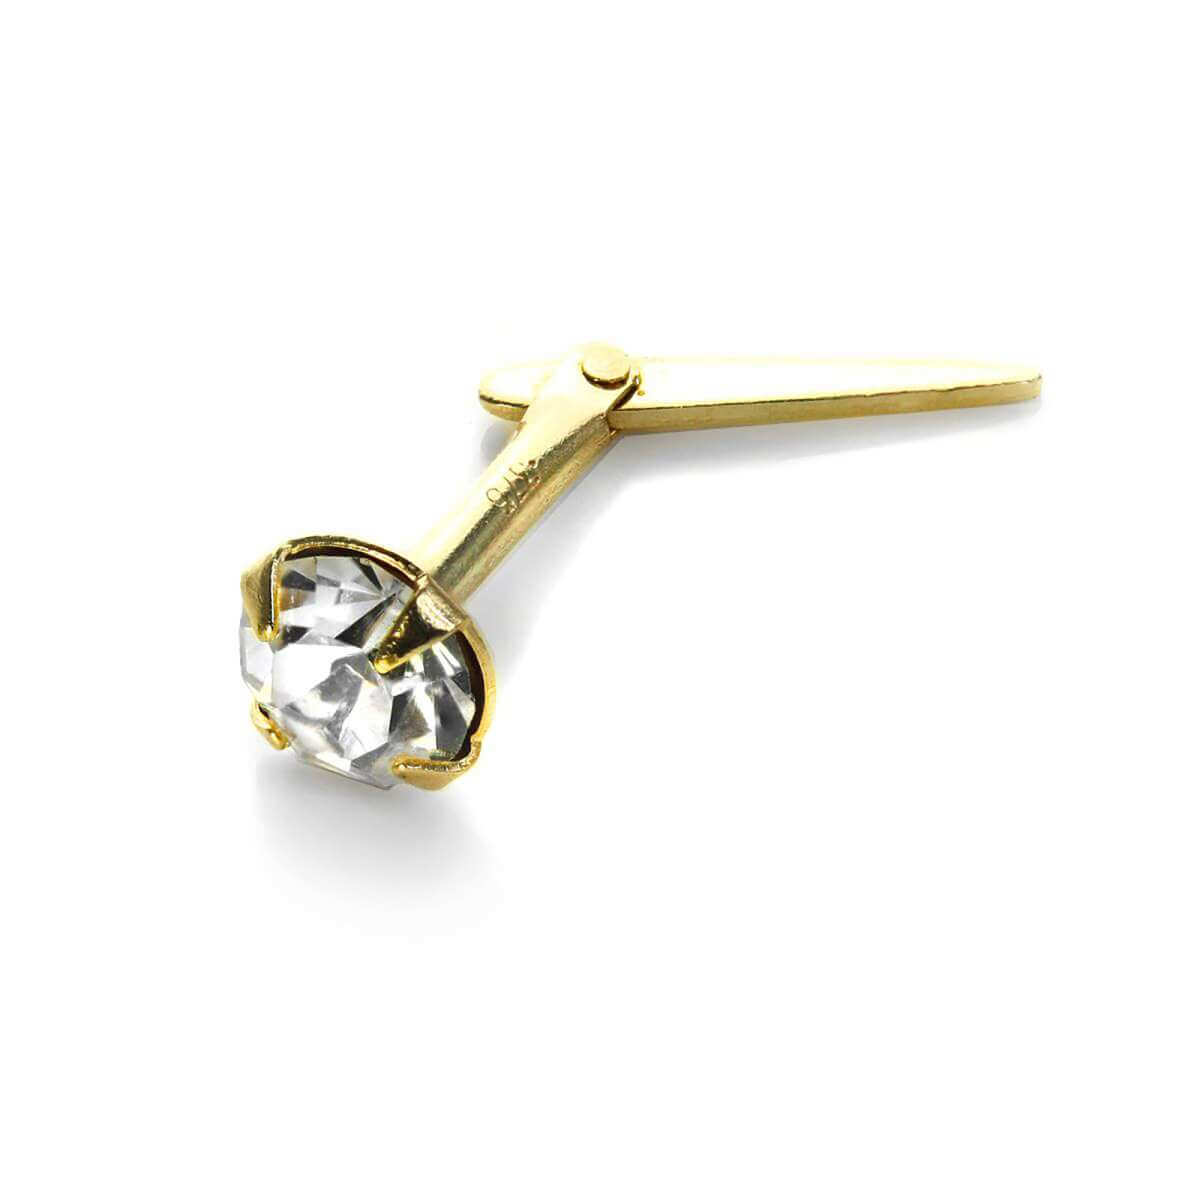 Andralok 9ct Yellow Gold Clear Crystal 3.5mm Nose Stud